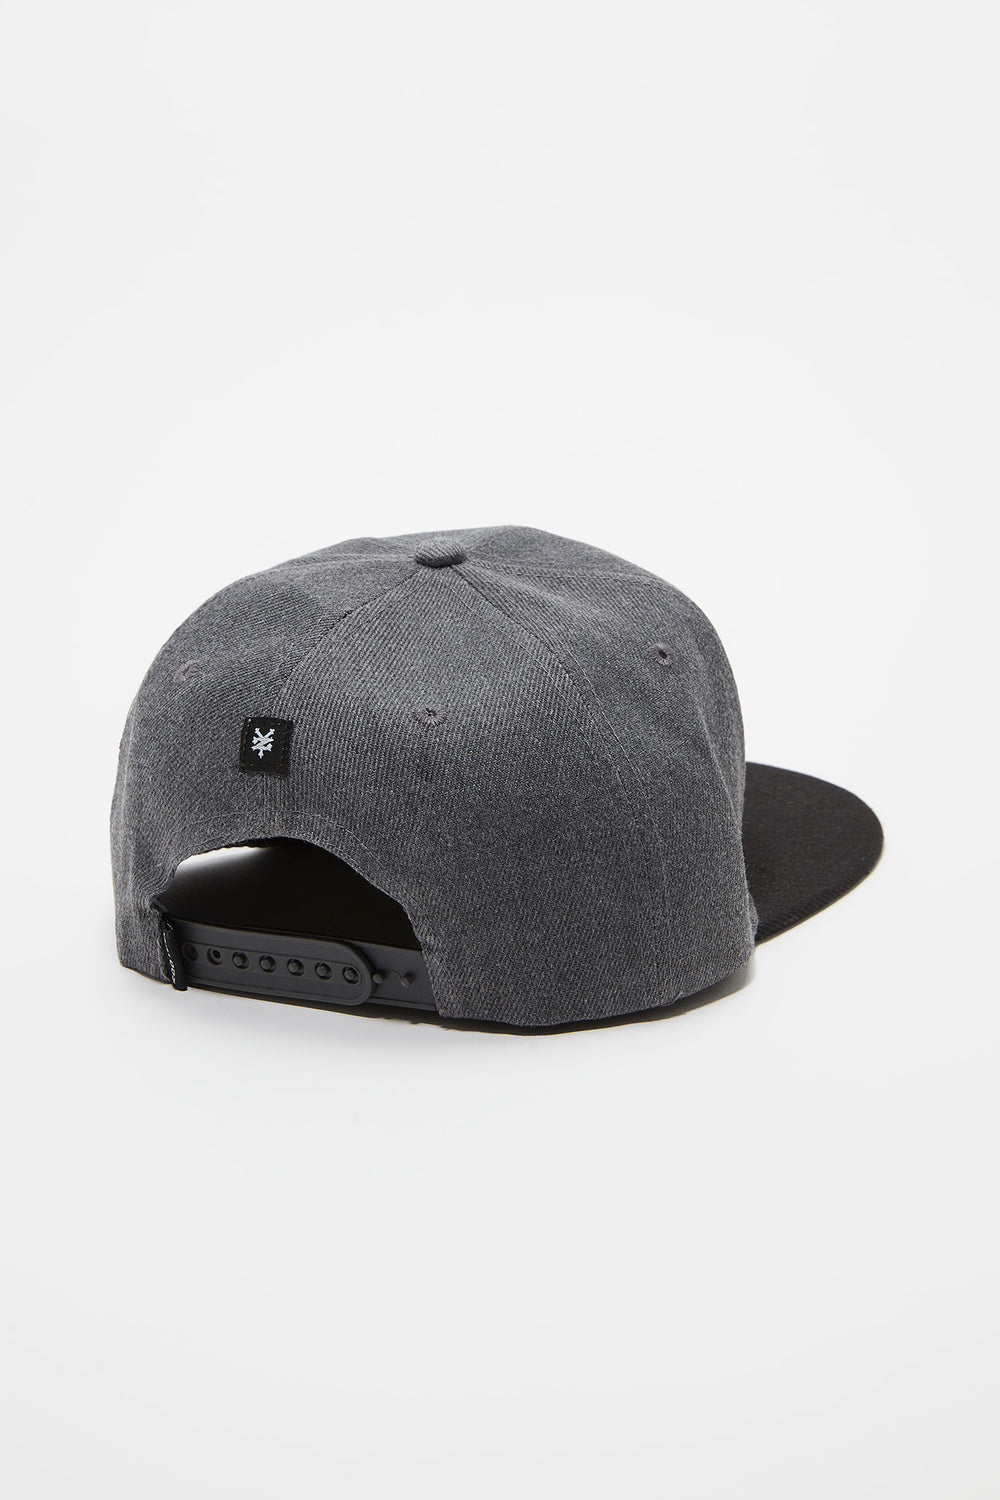 Zoo York Mens Patch Logo Snapback Charcoal